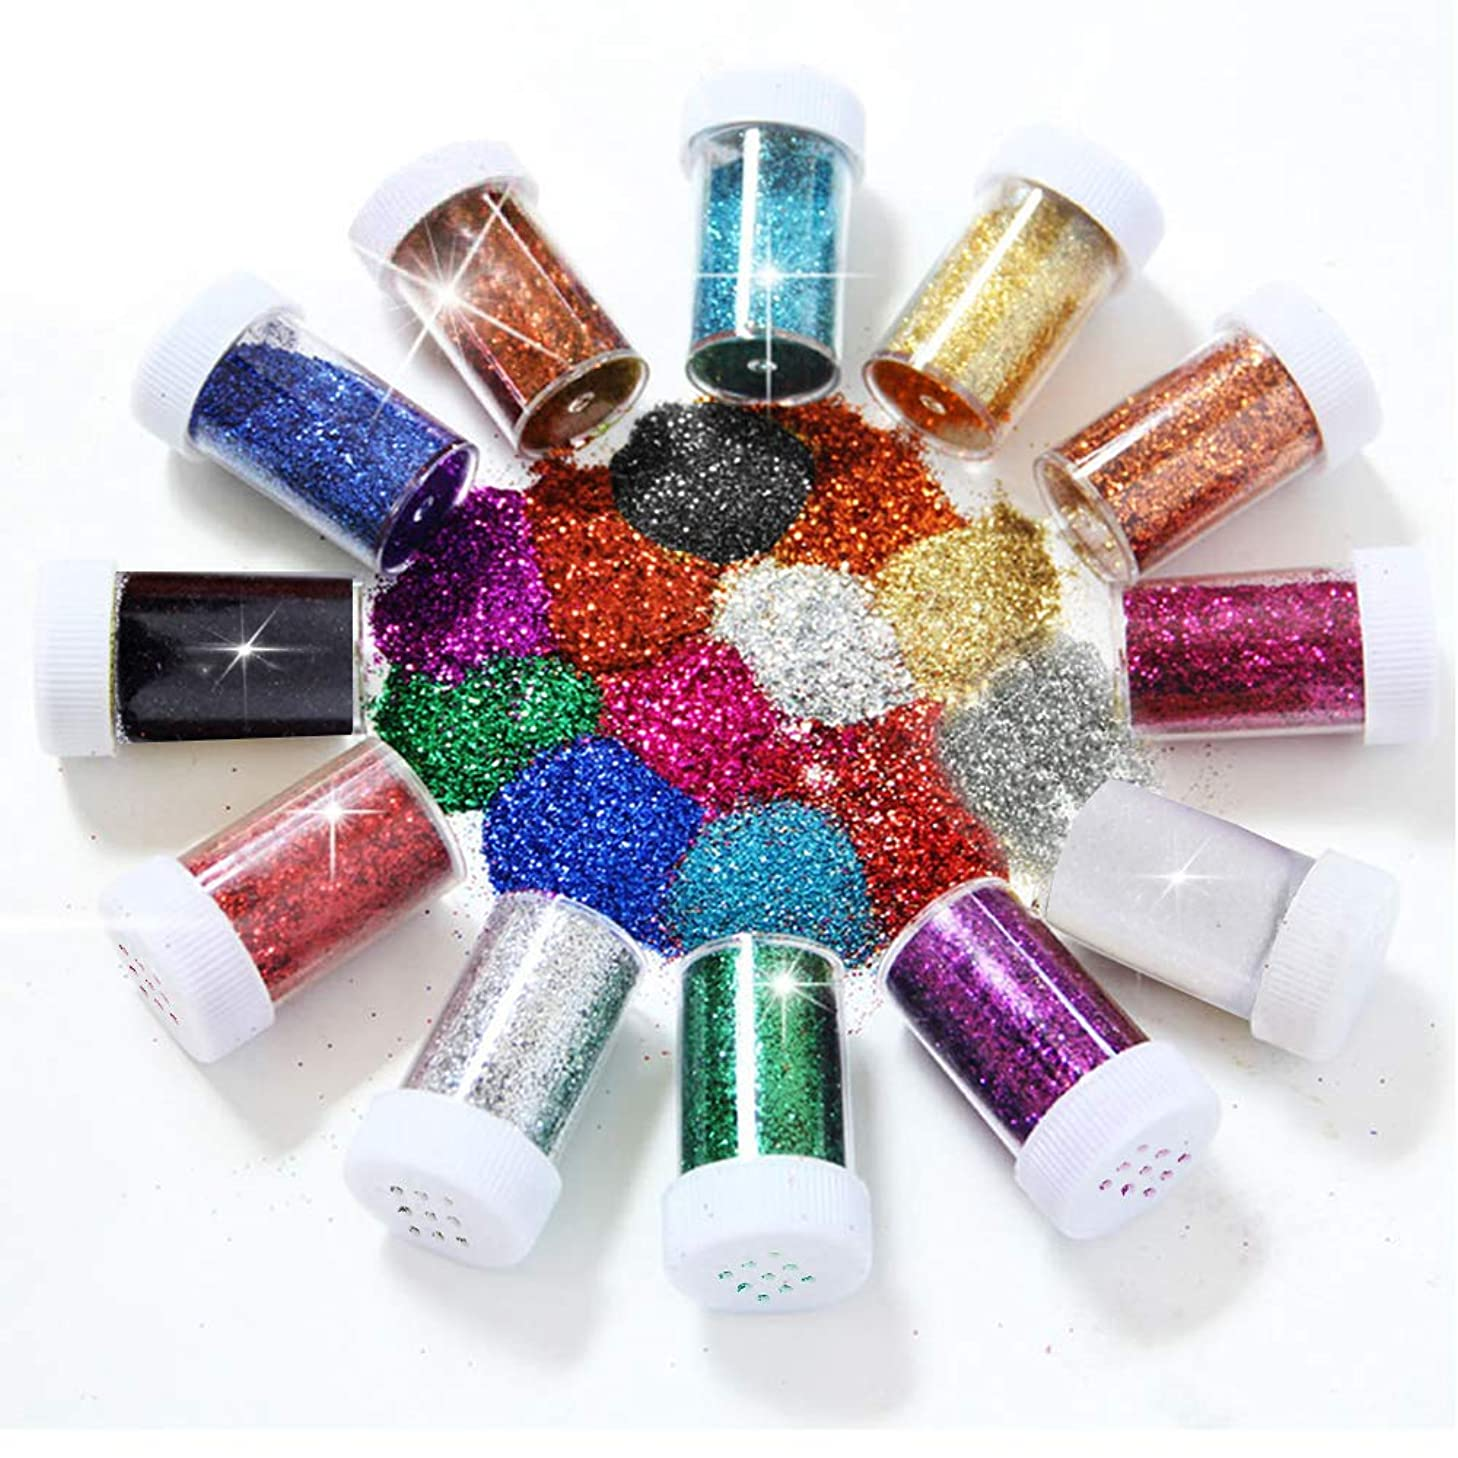 12 Pcs Magic Glitter Shaker for Making Glitter Tumblers, Specially-Made Multi Color Assorted Set Must Have for DIY Glitter Tumbler Crafts